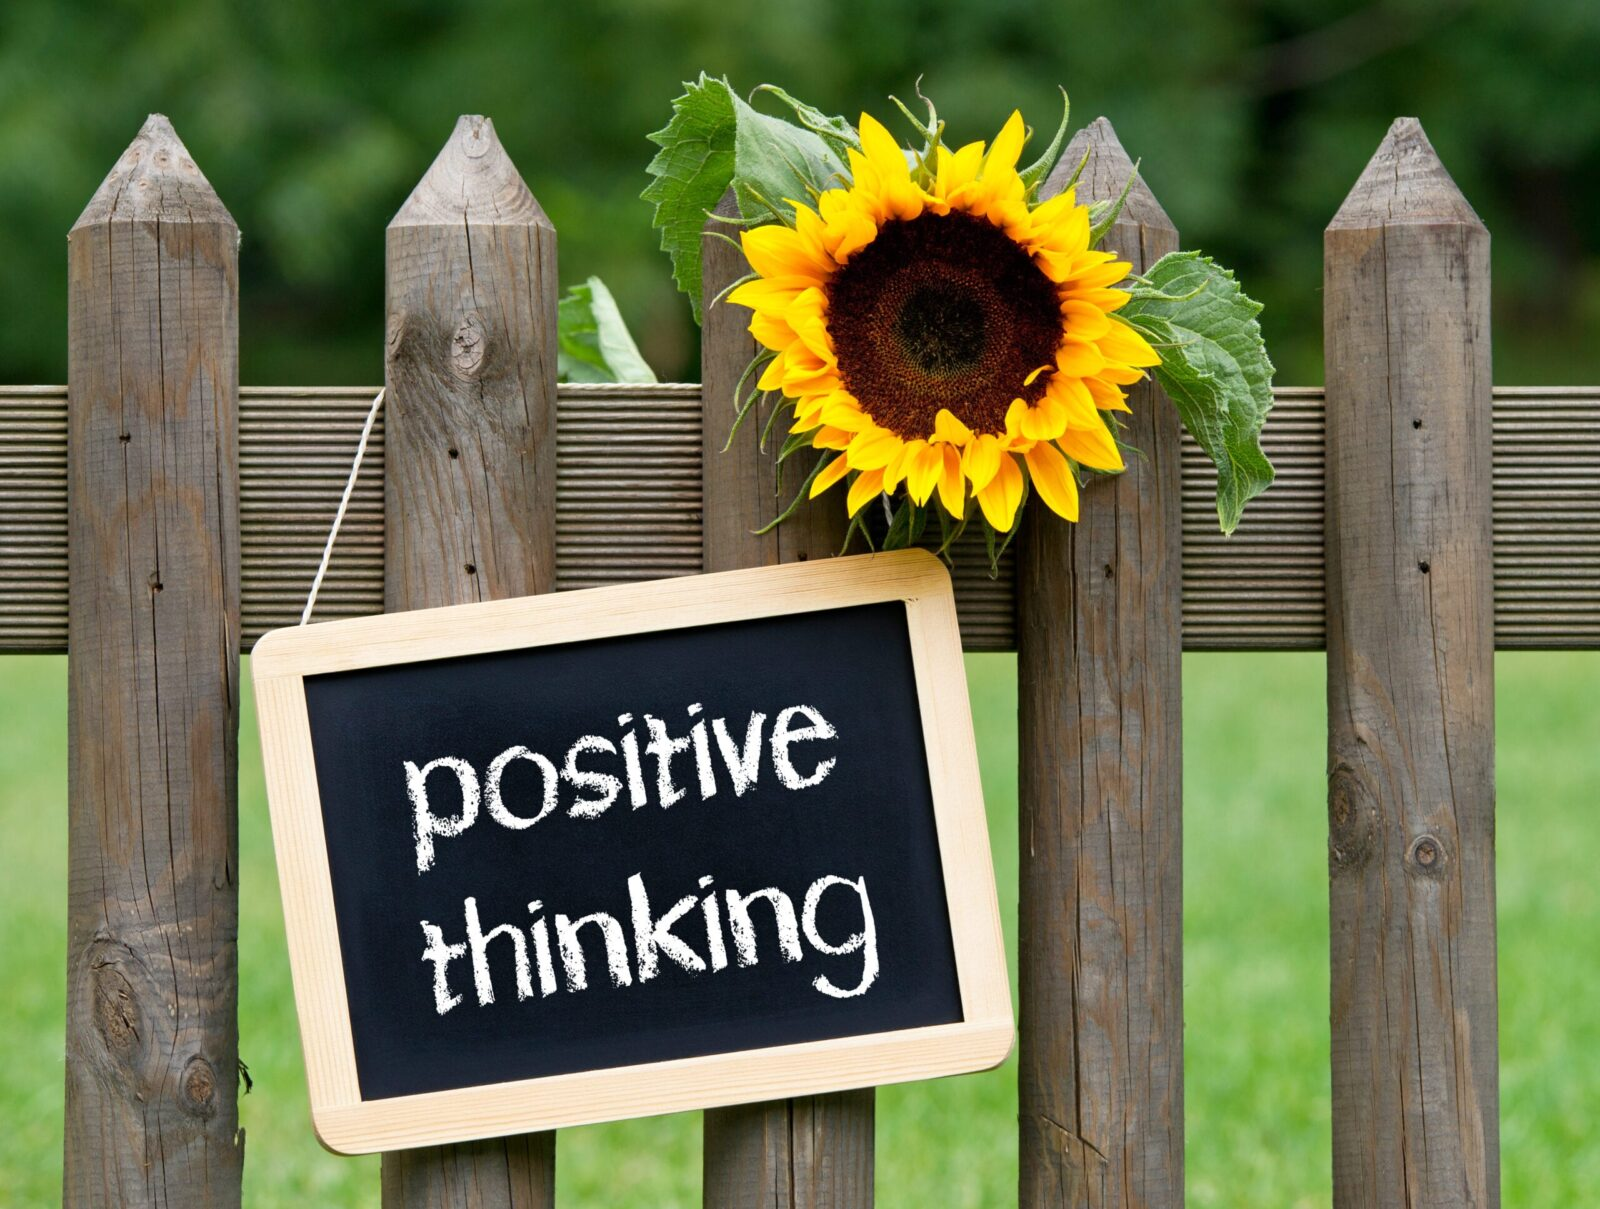 A Positive Thinking Sign Hanging on a Fence